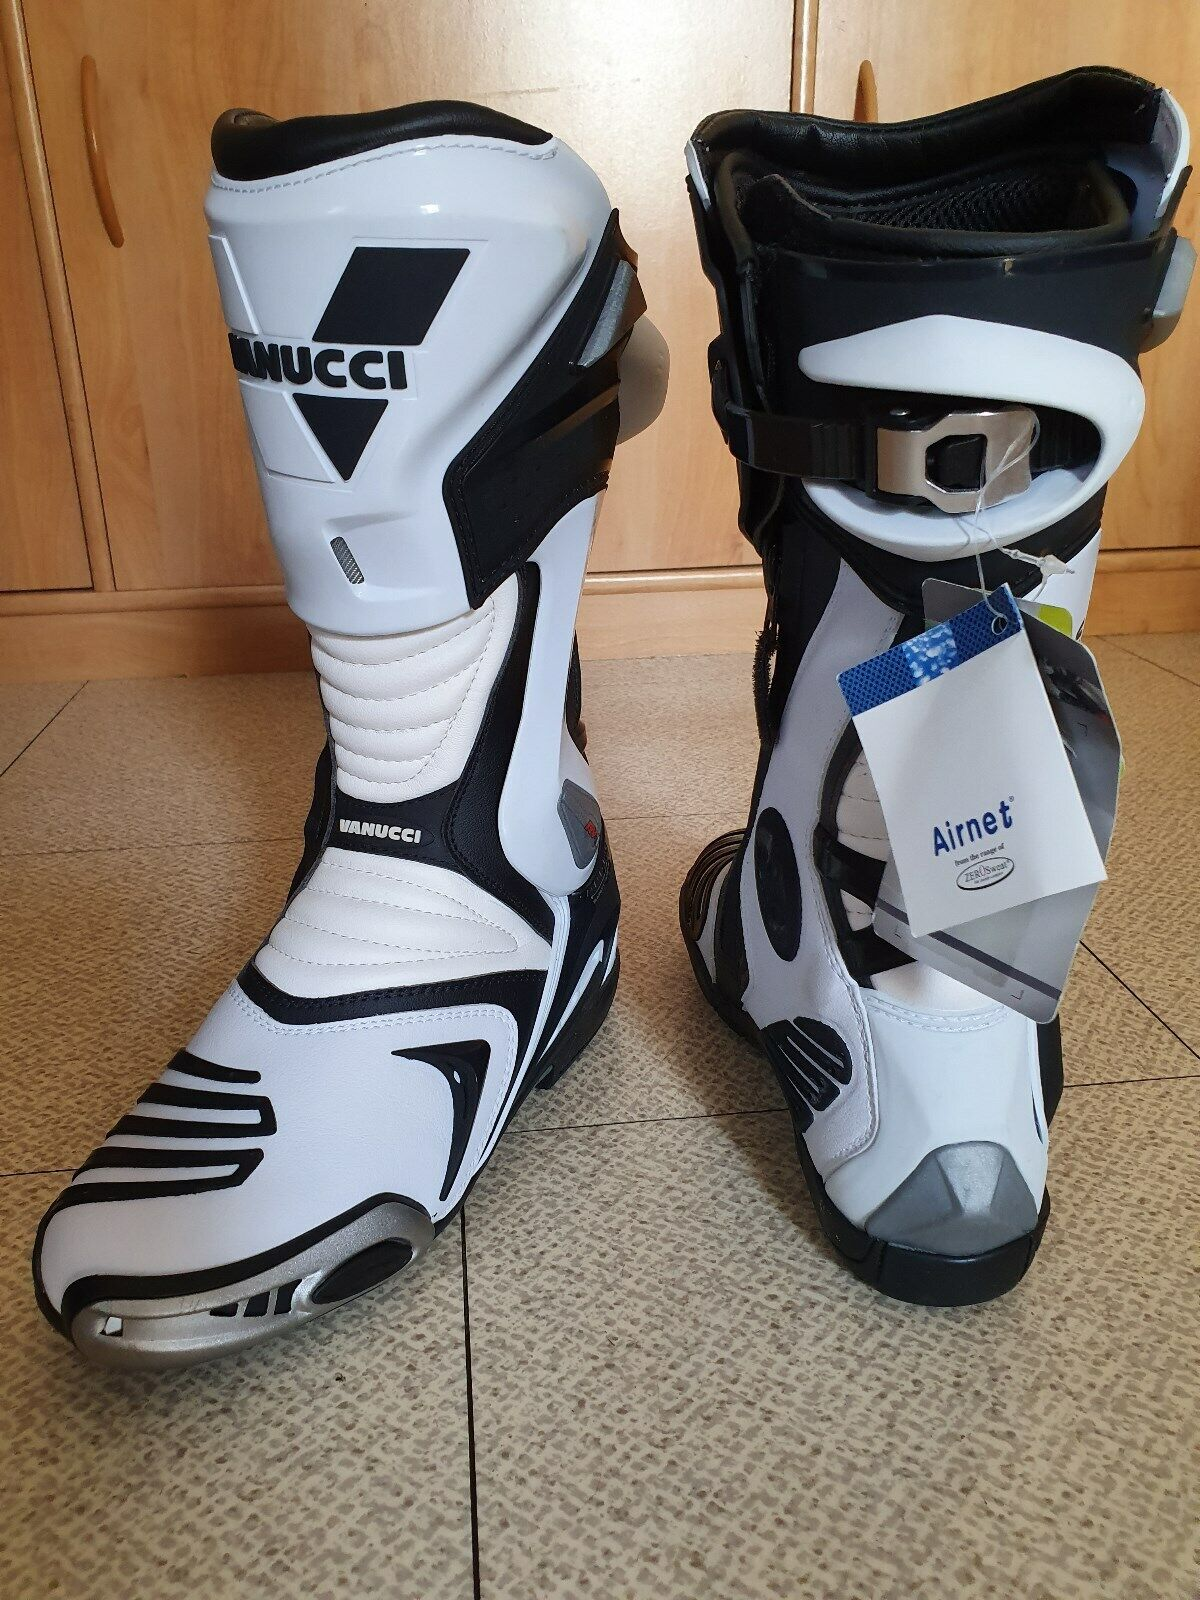 Bottes moto racing vanucci  pointure taille 40